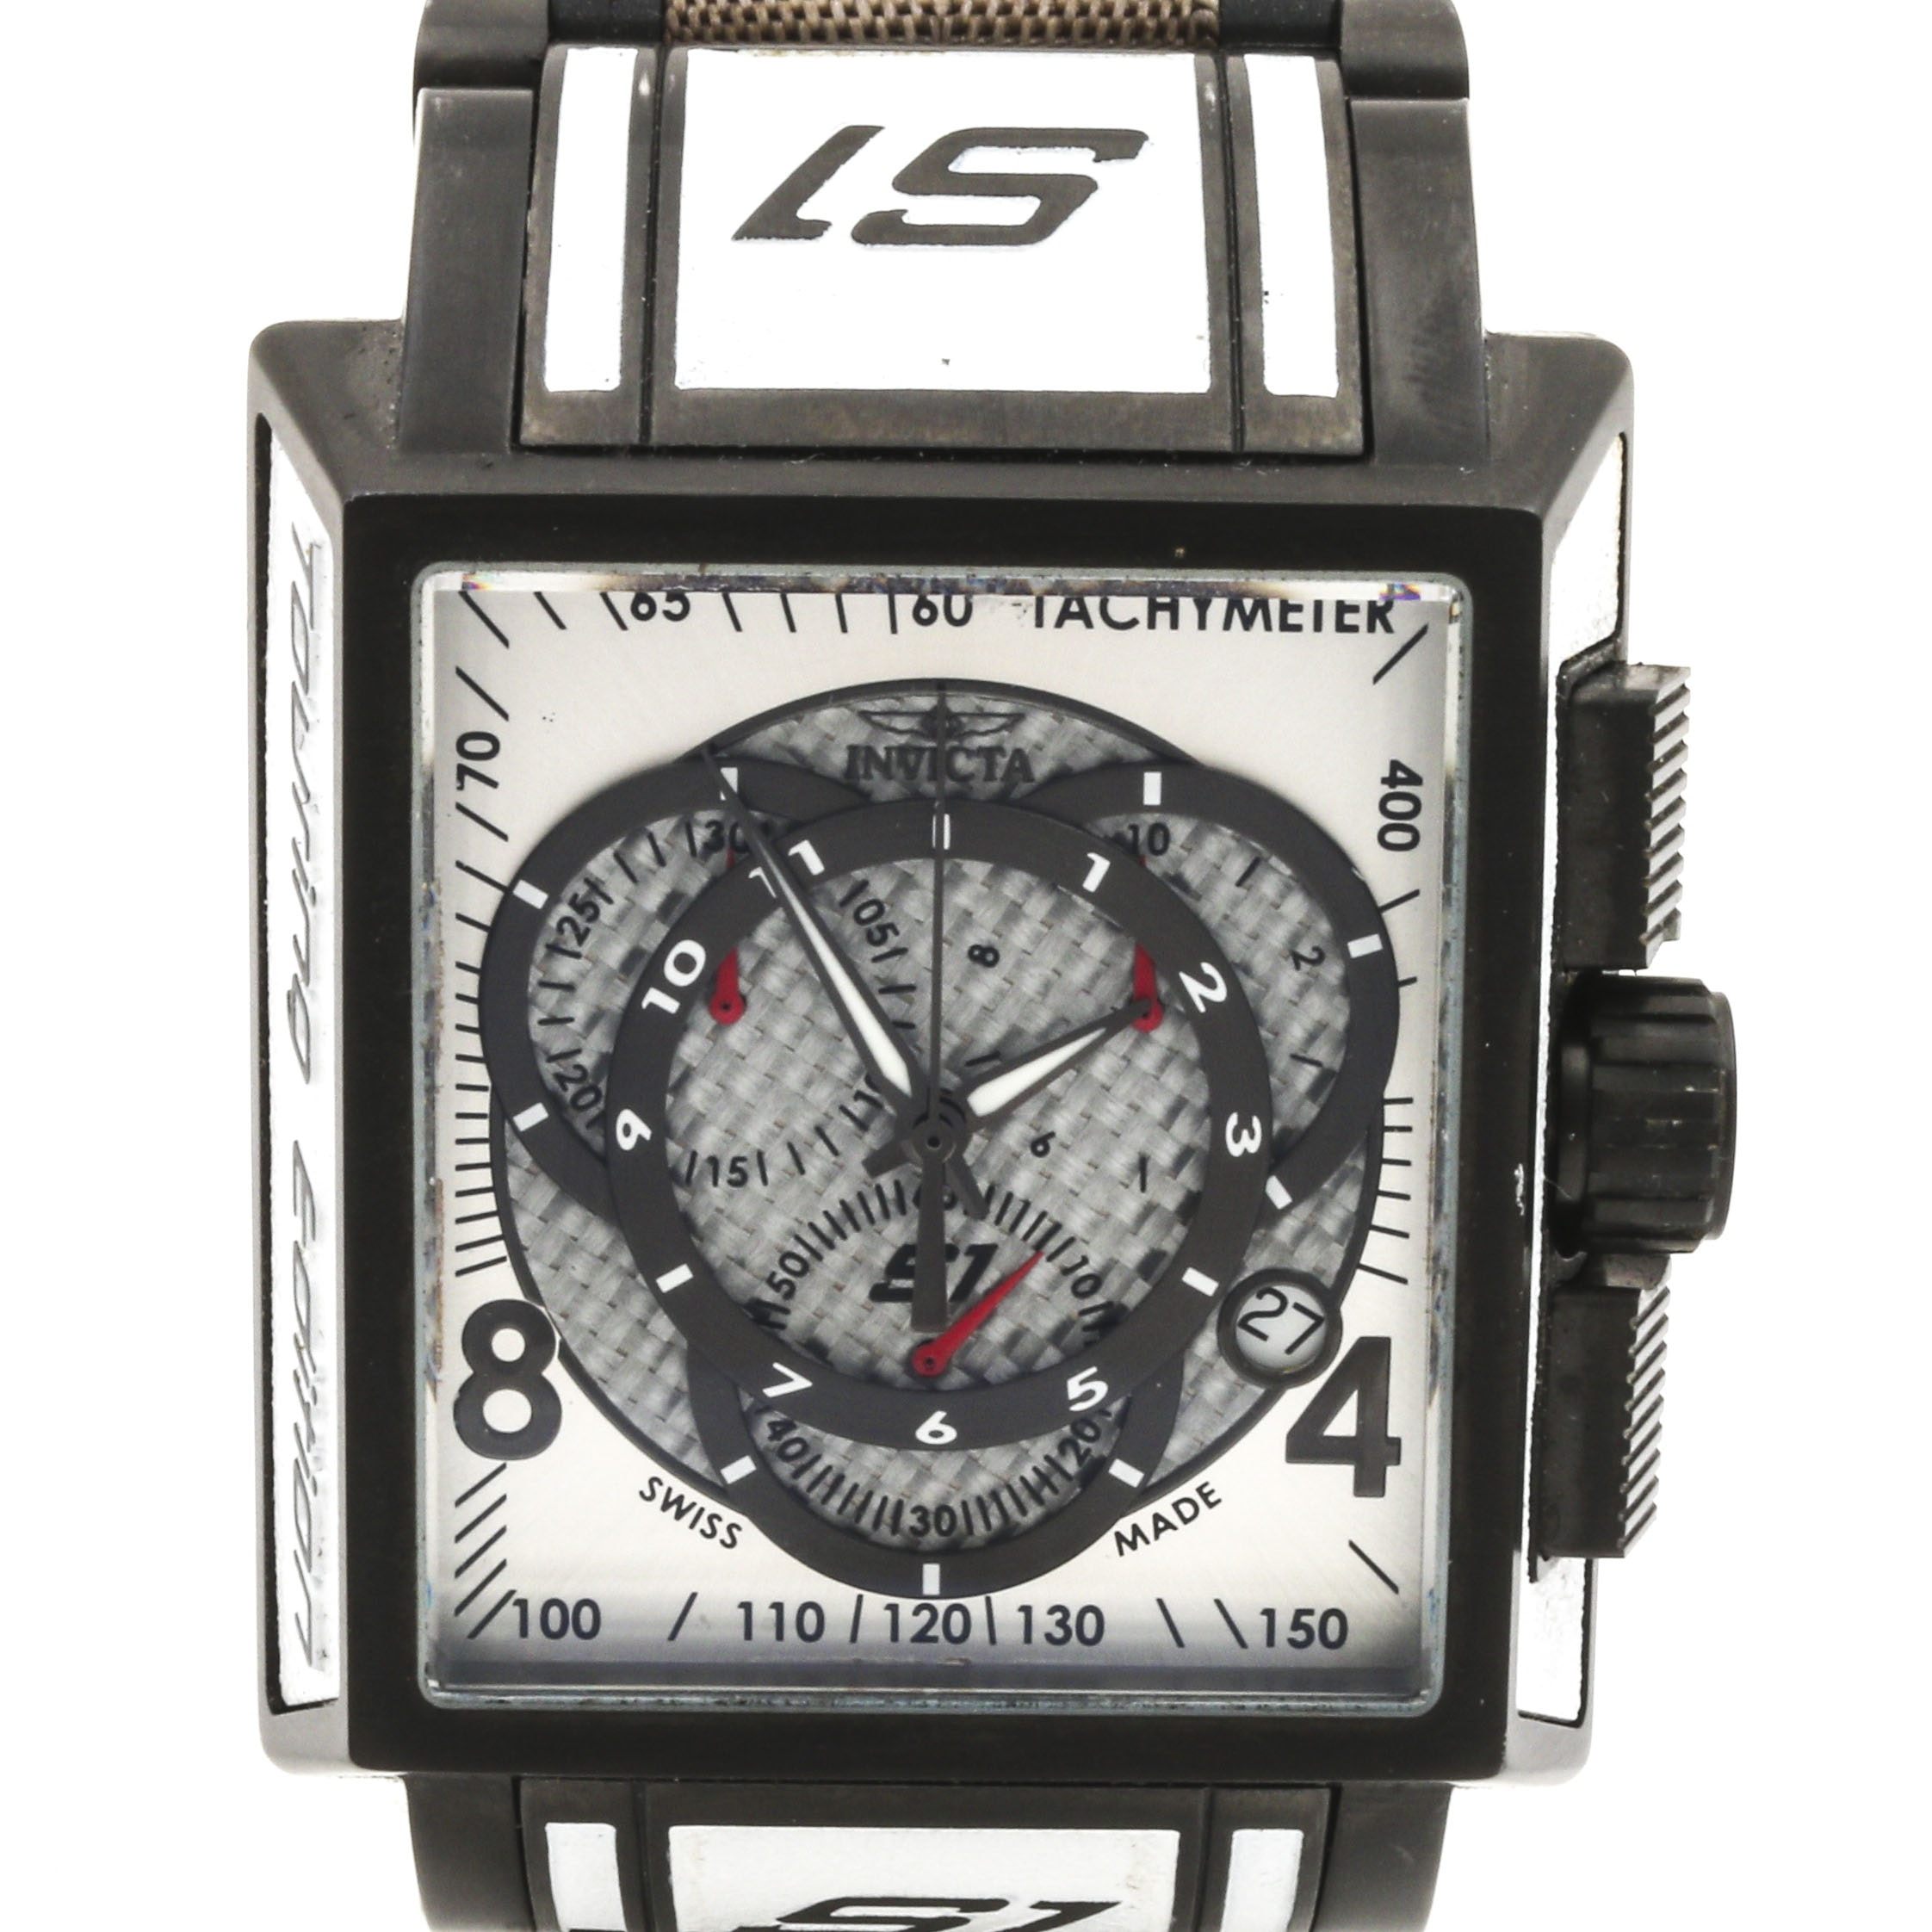 Invicta S1 Touring Edition Stainless Steel Wristwatch